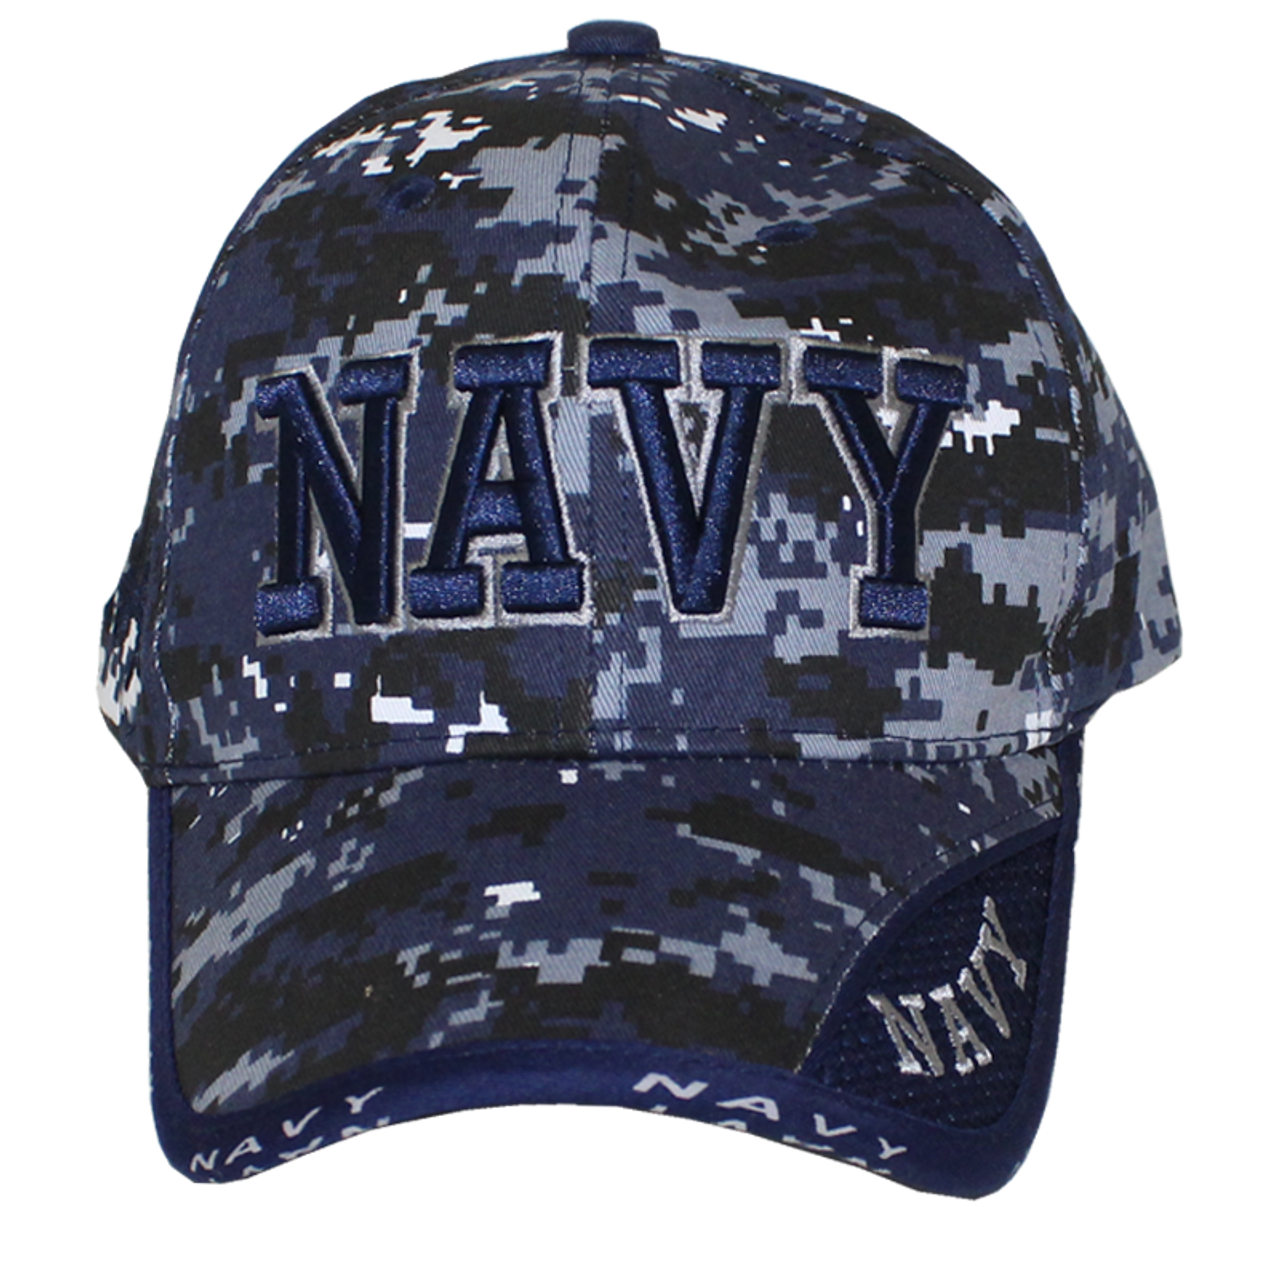 b338ee7a830 ... clearance 10077 military hat u.s. navy blue digital camouflage 0cd6a  43304